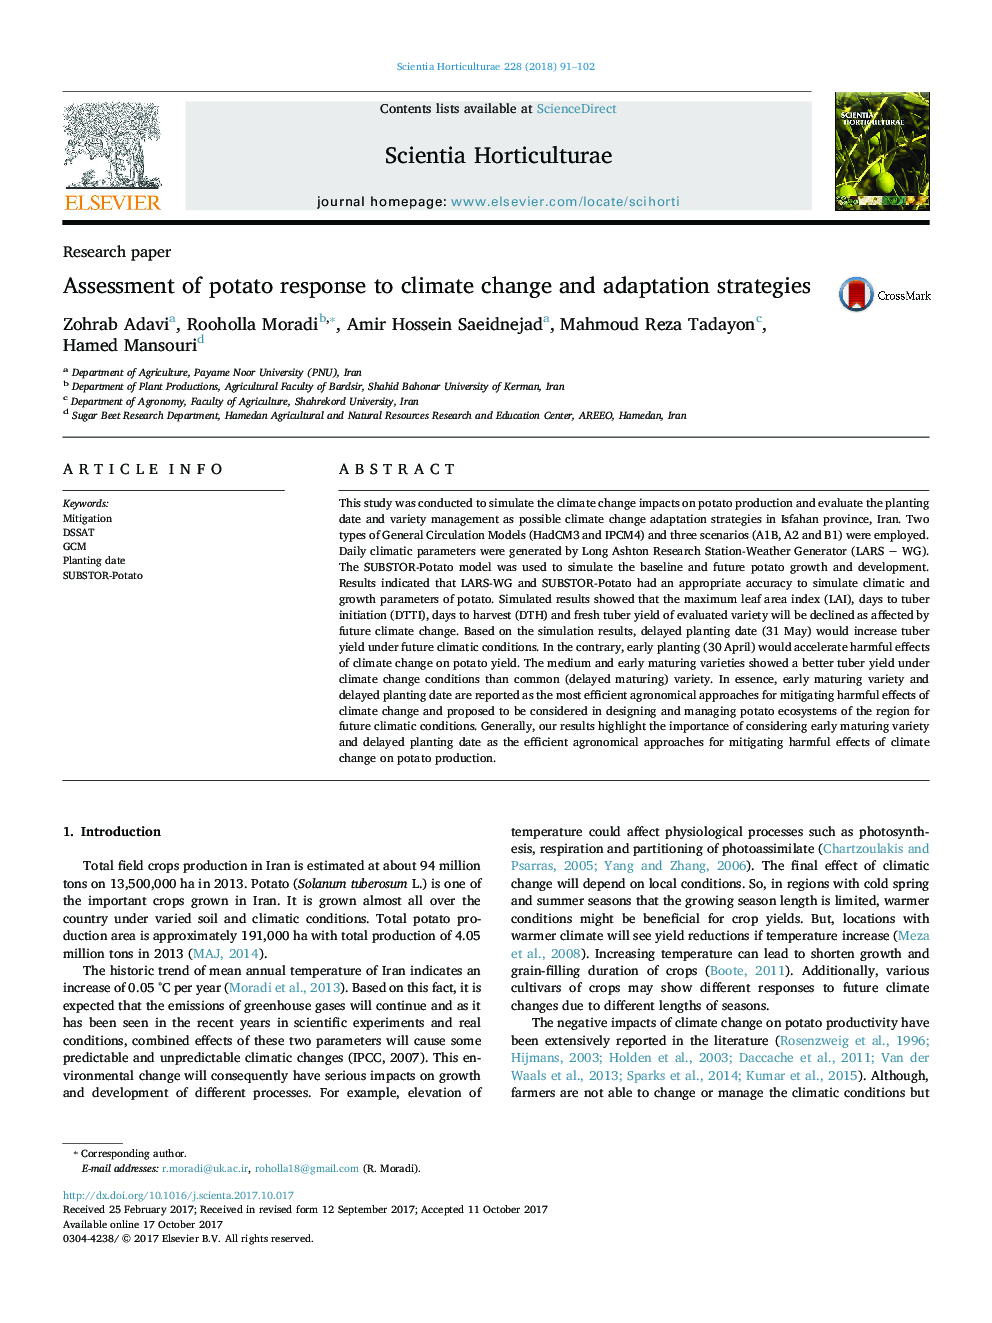 Research paperAssessment of potato response to climate change and adaptation strategies